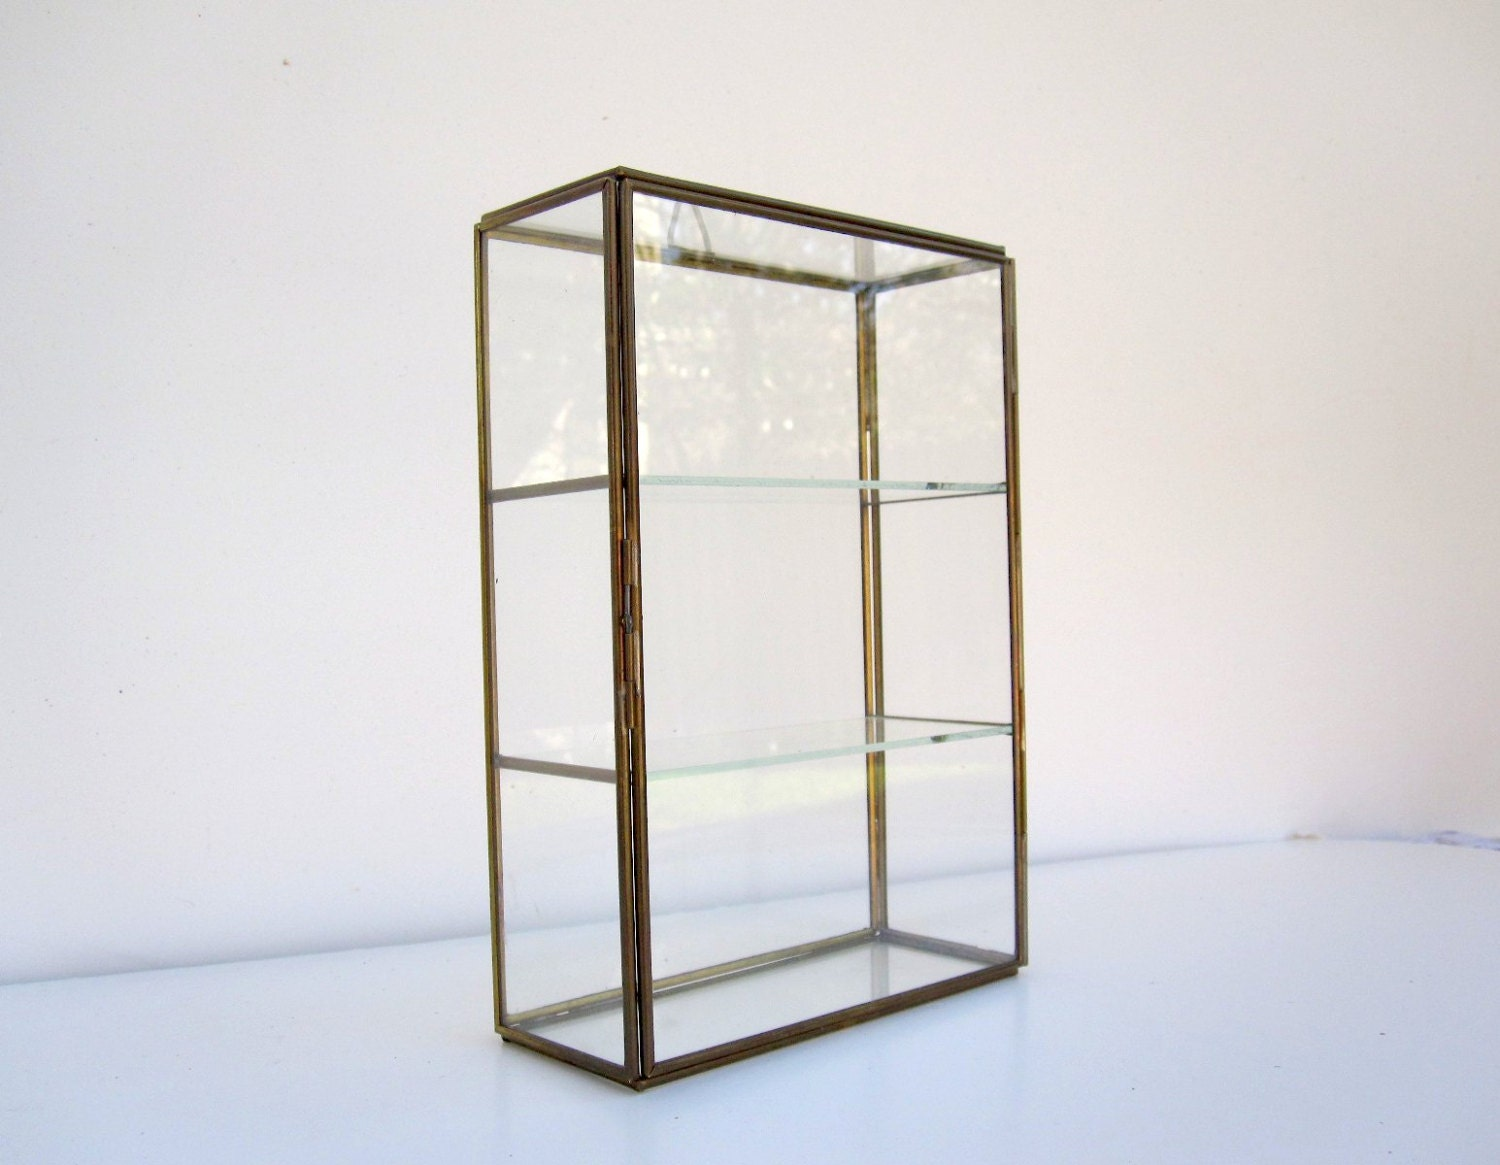 #937638 Display Shelf Glass And Brass Display Case By  with 1500x1165 px of Highly Rated Glass Display Cabinet Ph 11651500 picture/photo @ avoidforclosure.info